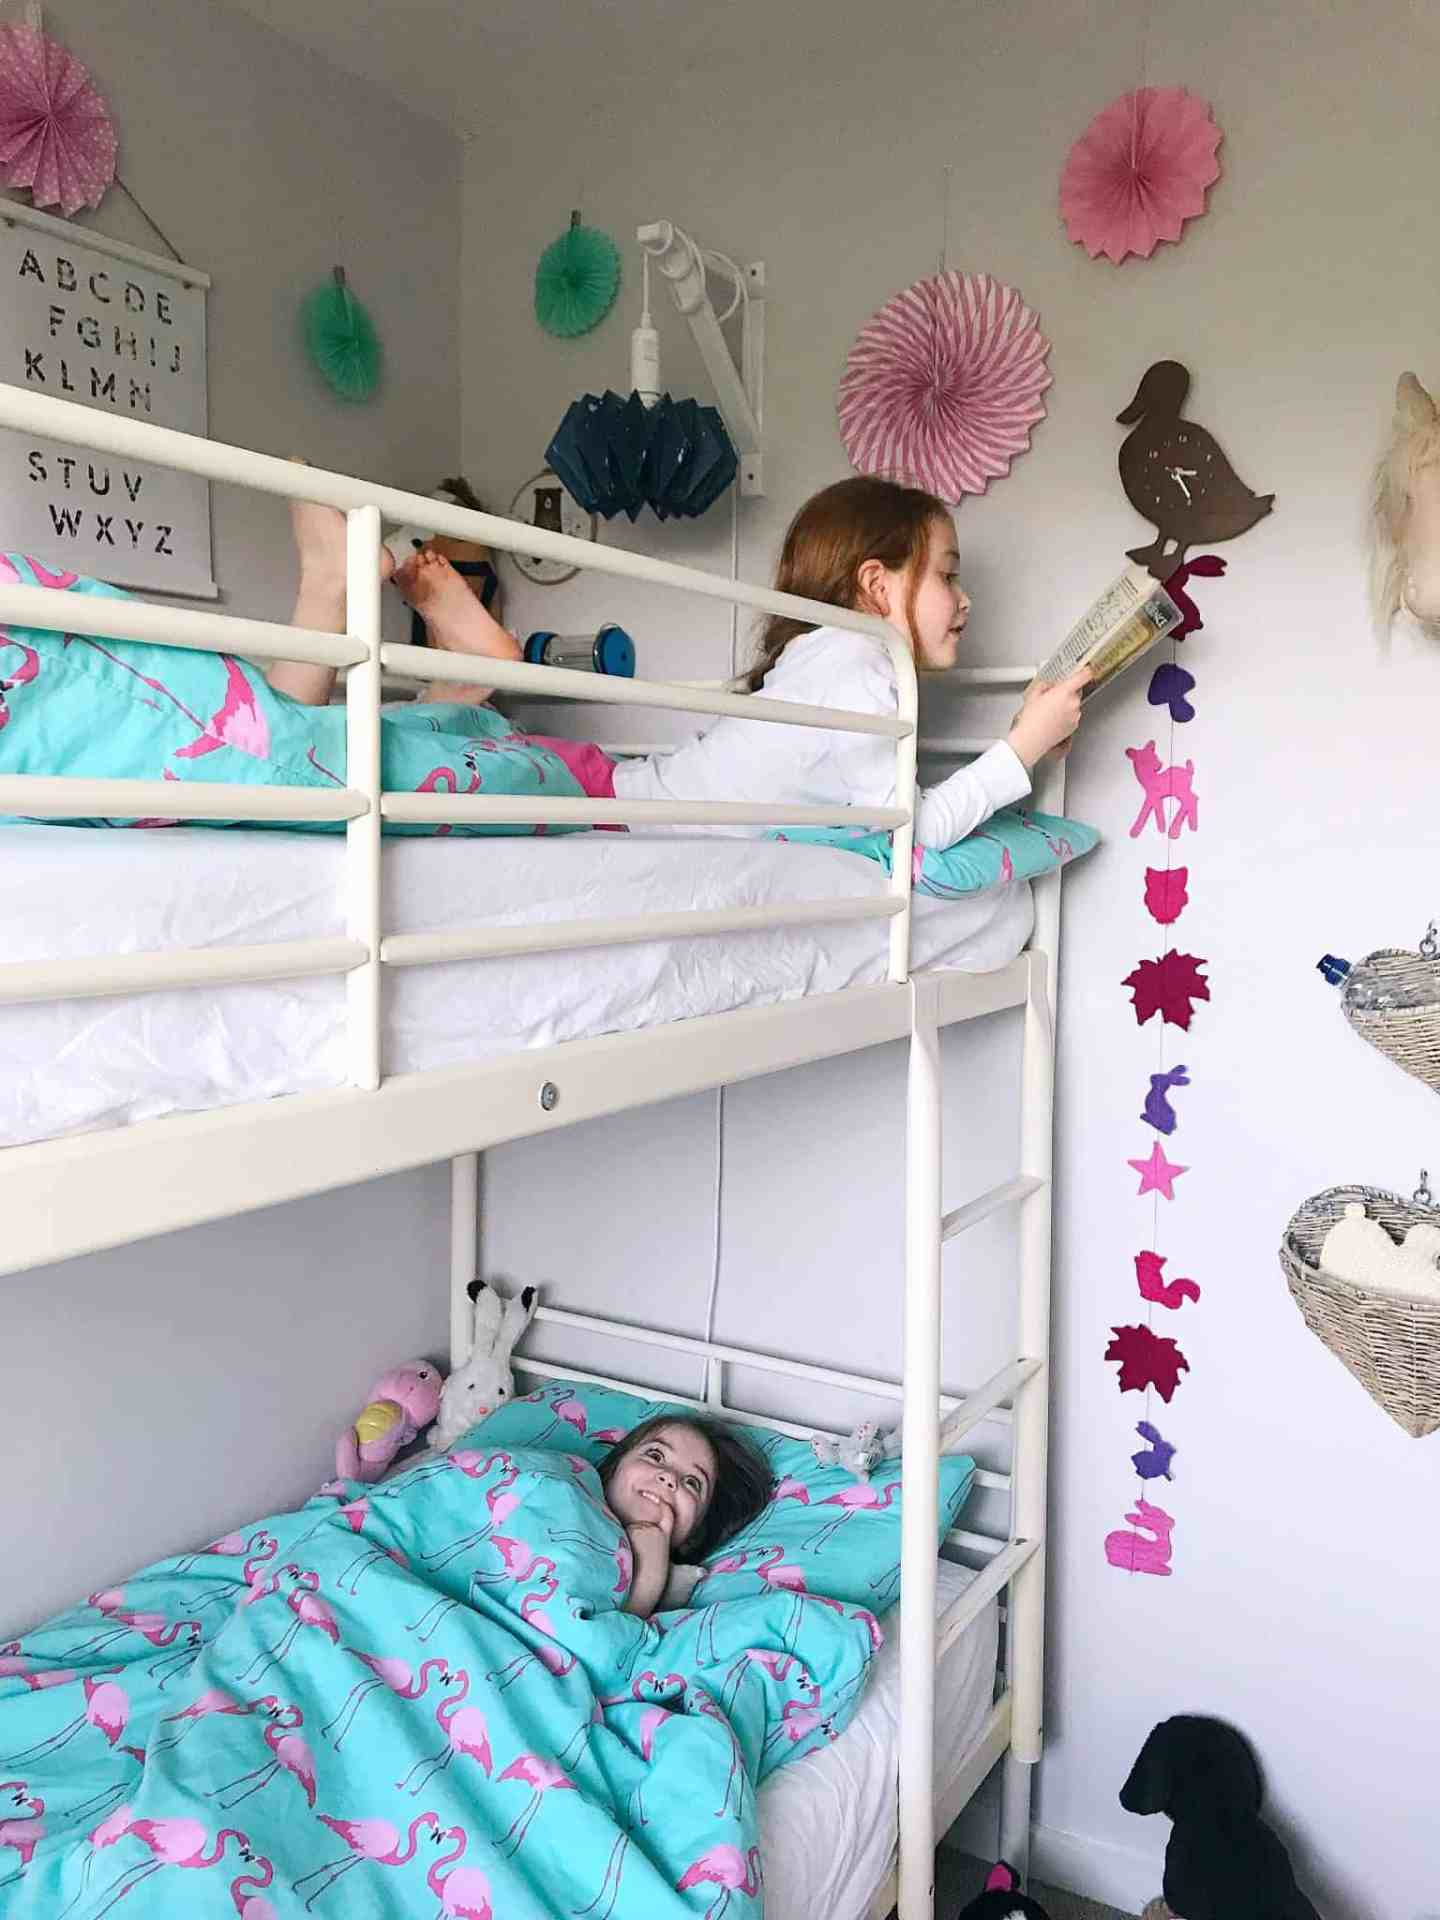 Sisters reading in their shared bedroom with bunk beds